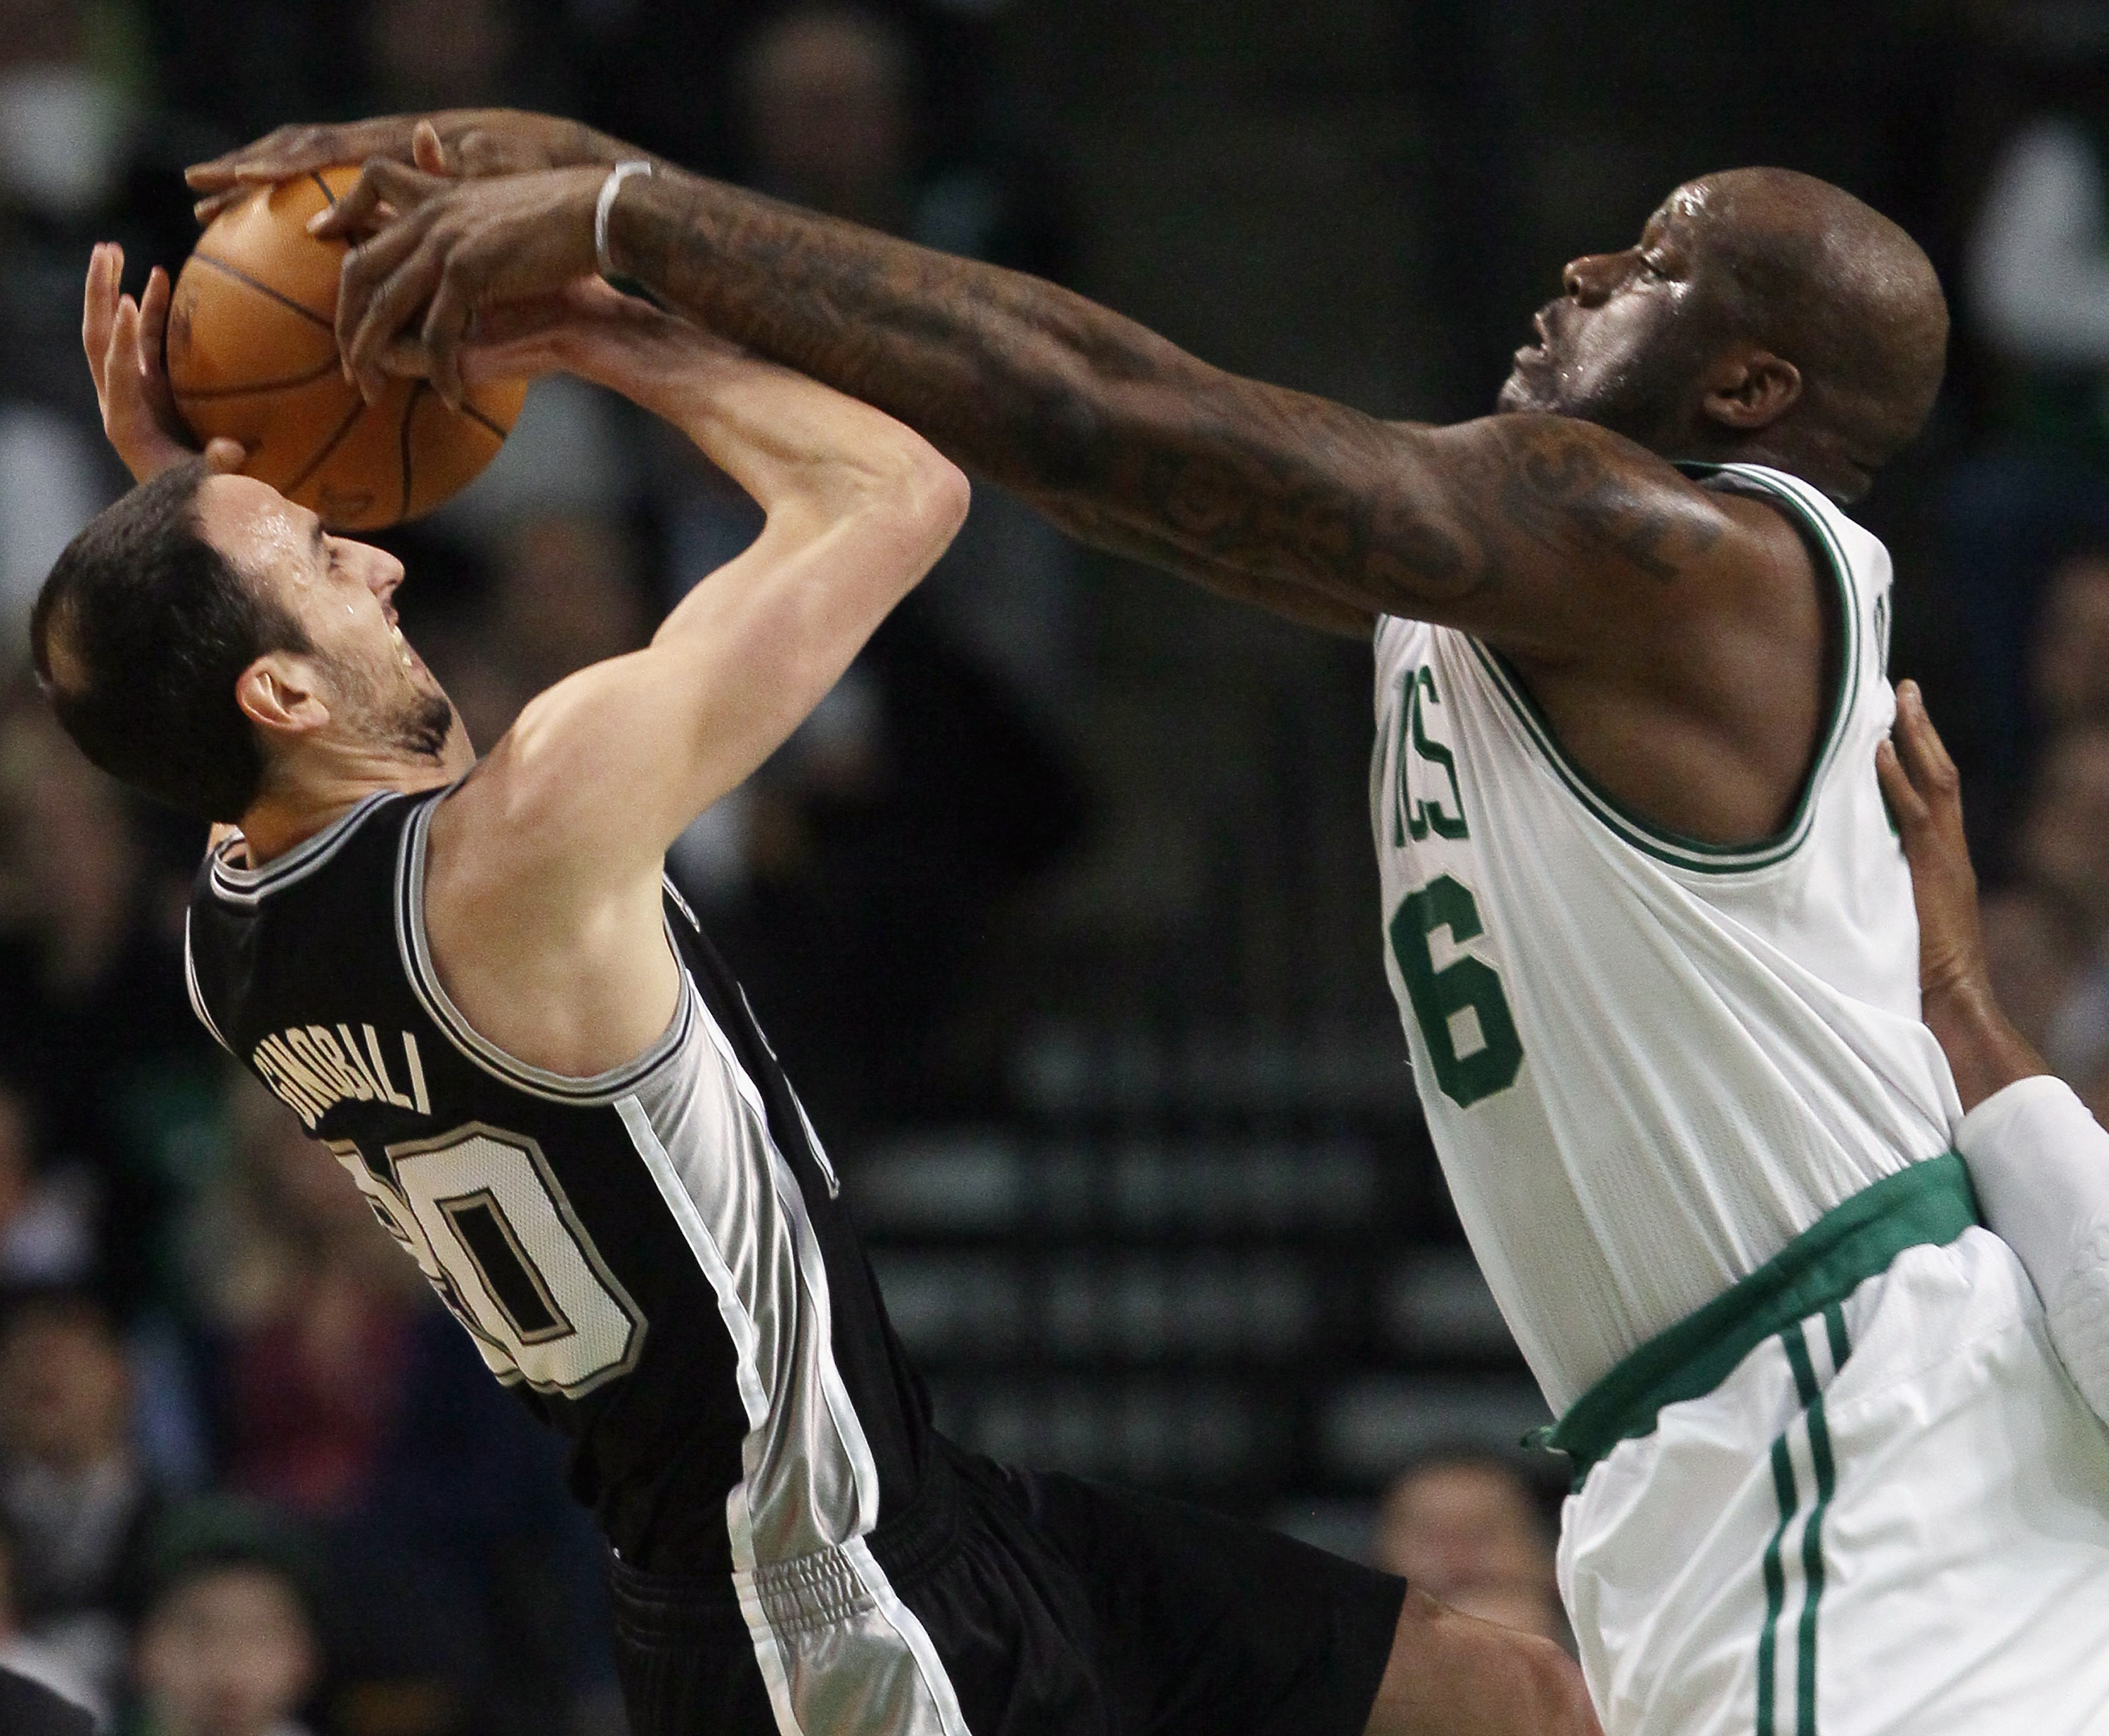 BOSTON, MA - JANUARY 05:  Manu Ginobili #20 of the San Antonio Spurs tries to take a shot as Shaquille O'Neal #36 of the Boston Celtics attempts to block on January 5, 2011 at the TD Garden in Boston, Massachusetts. NOTE TO USER: User expressly acknowledg